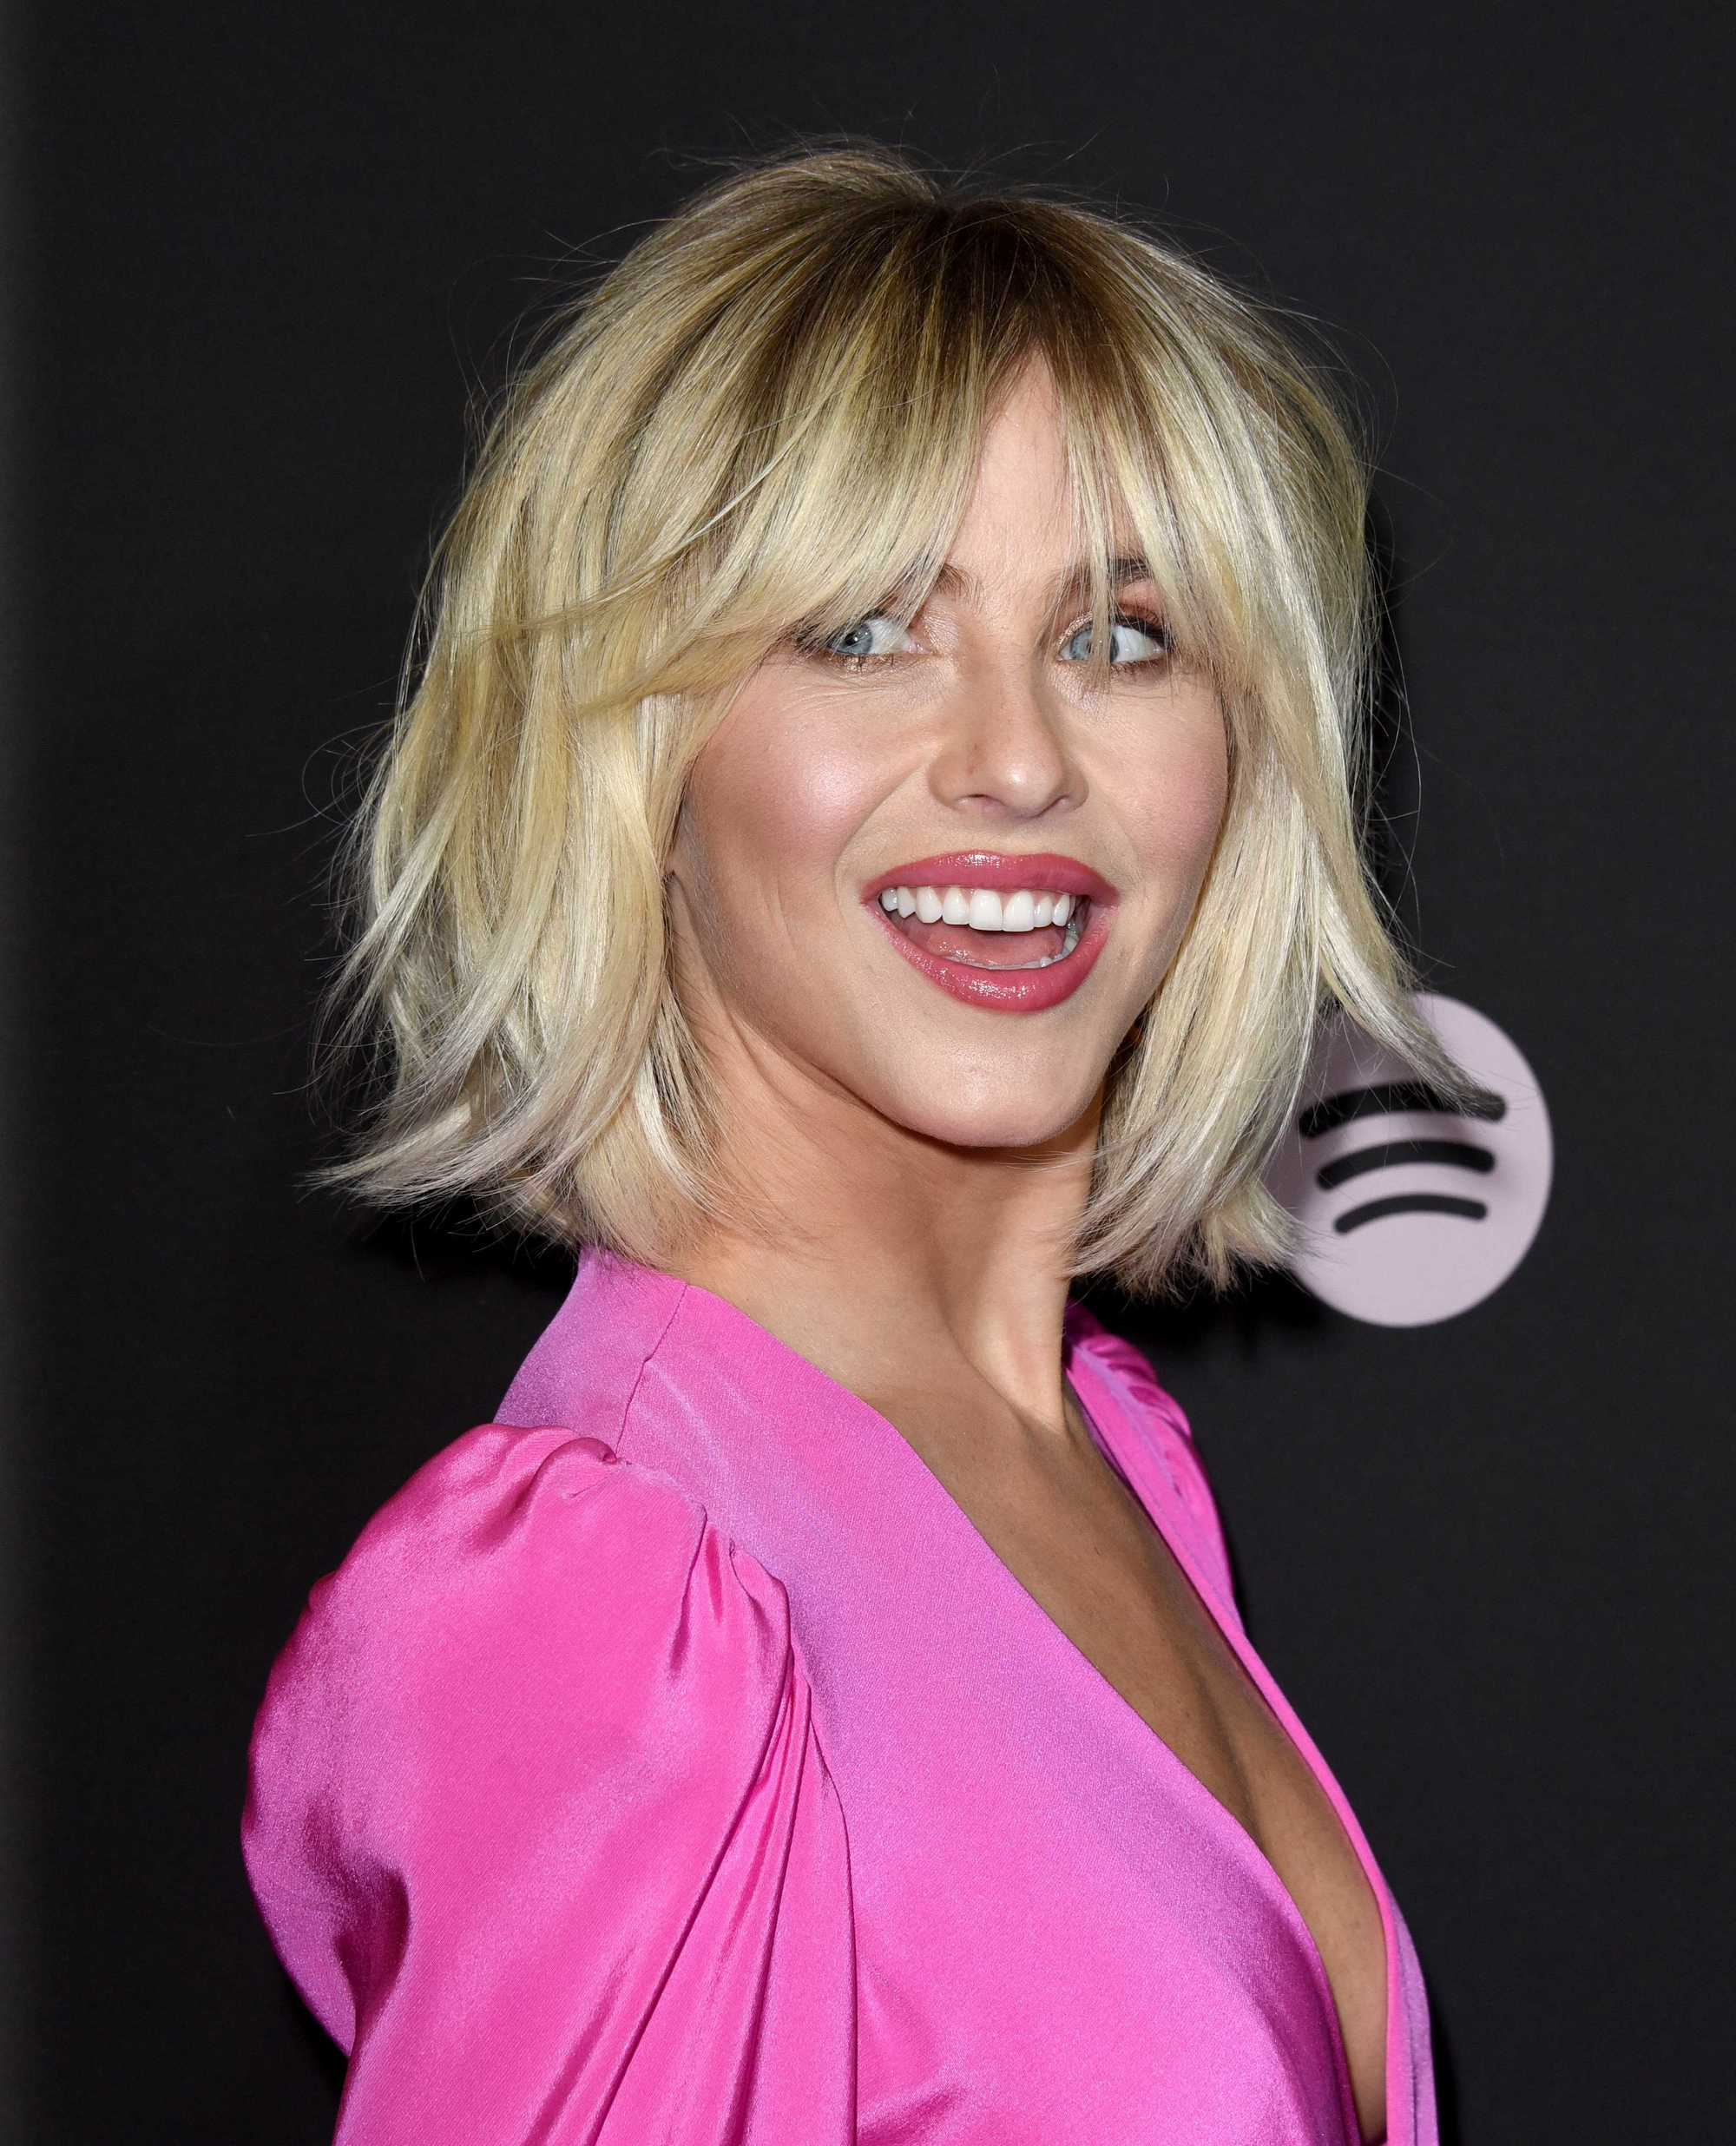 66 Bob Hairstyles And Haircuts You Can Try Now | Trends 2019 In Voluminous Short Choppy Blonde Bob Hairstyles (Gallery 19 of 20)